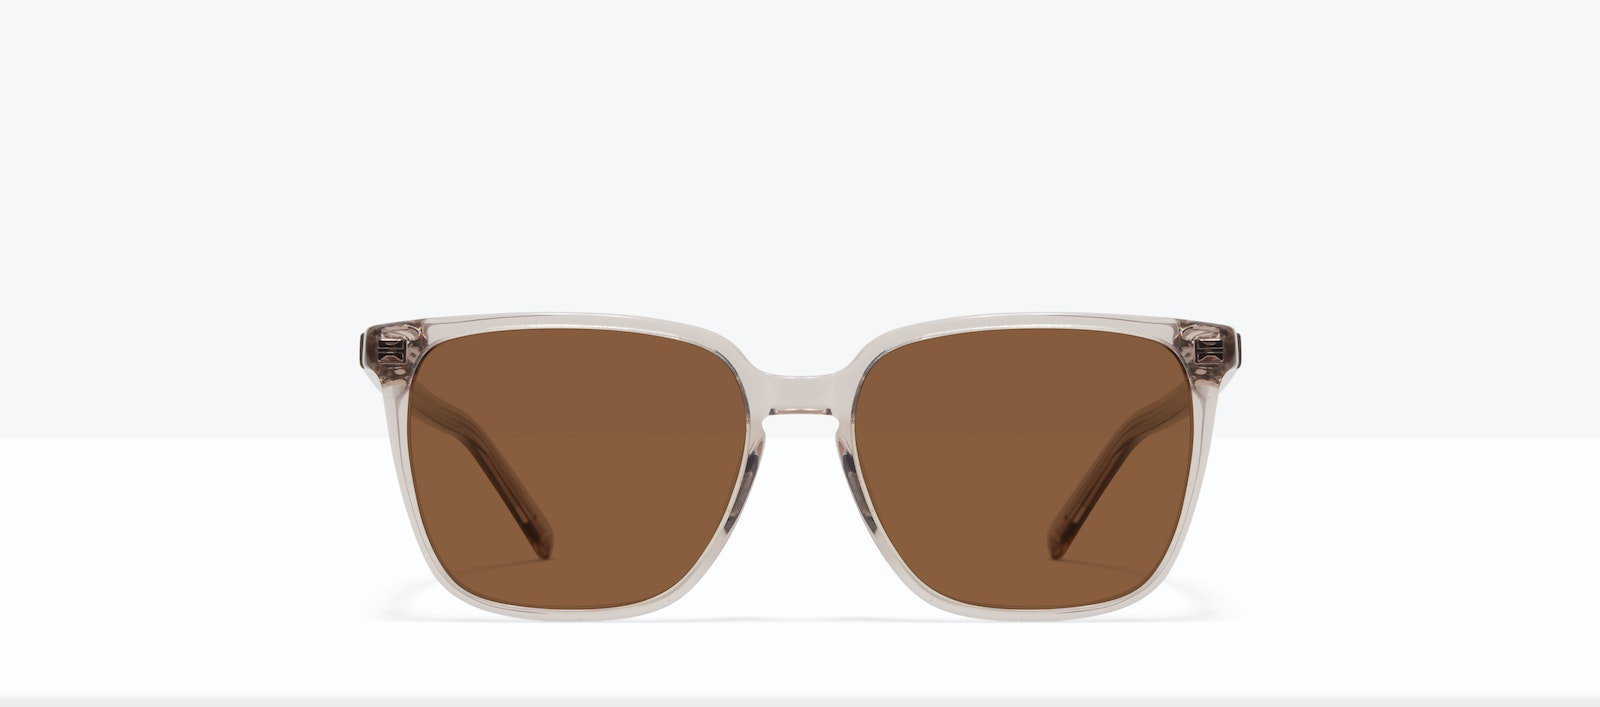 Affordable Fashion Glasses Square Sunglasses Women Runway S Sand Front